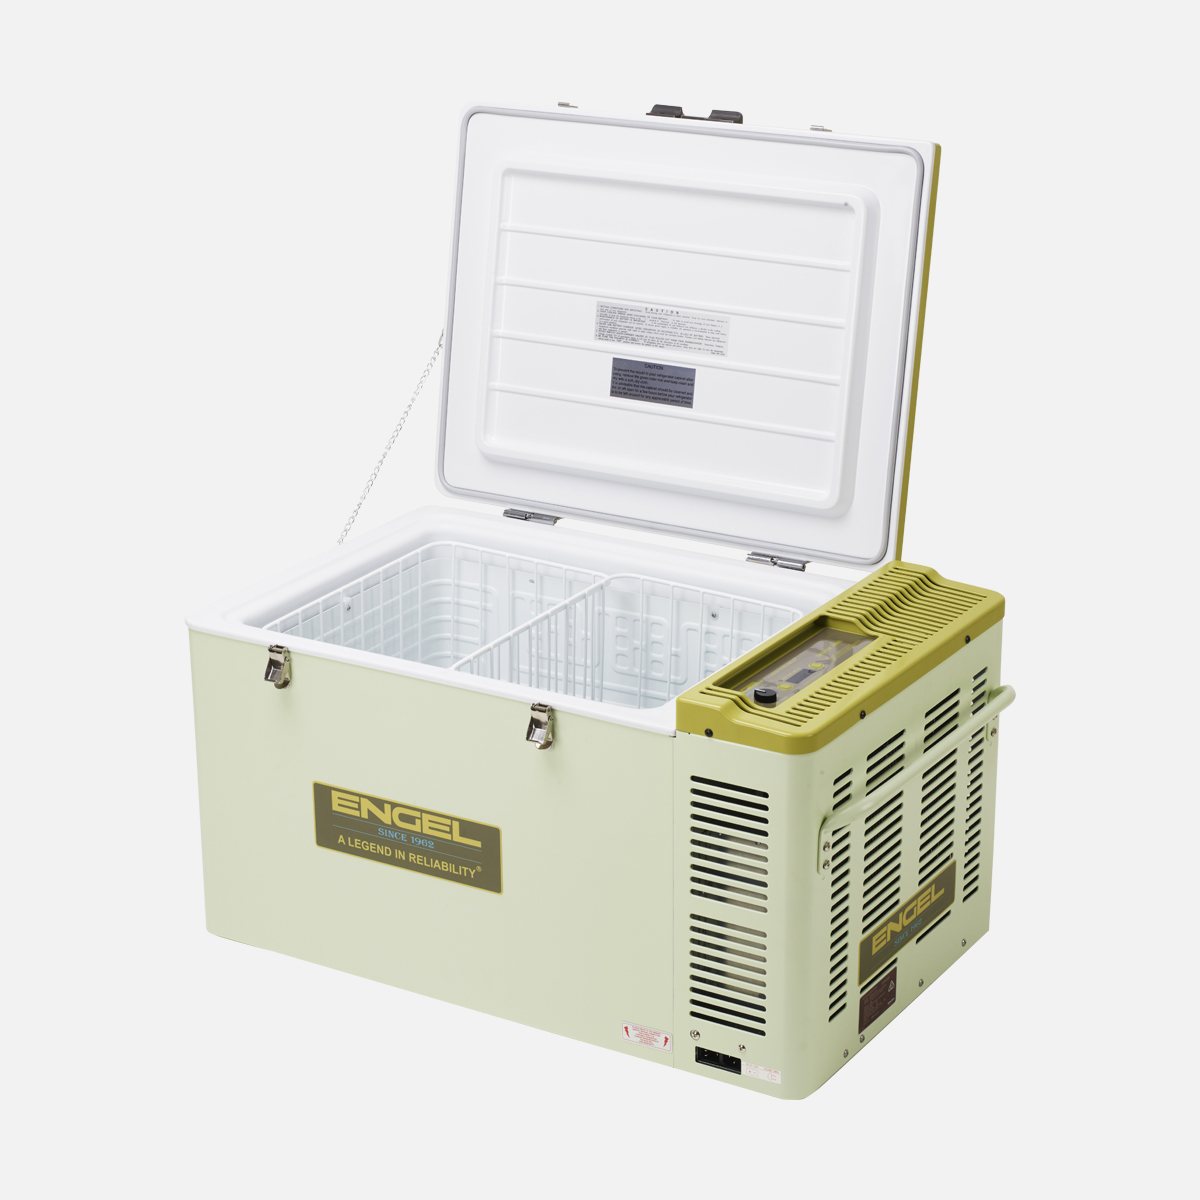 Engel portable fridg/freezer 60L open